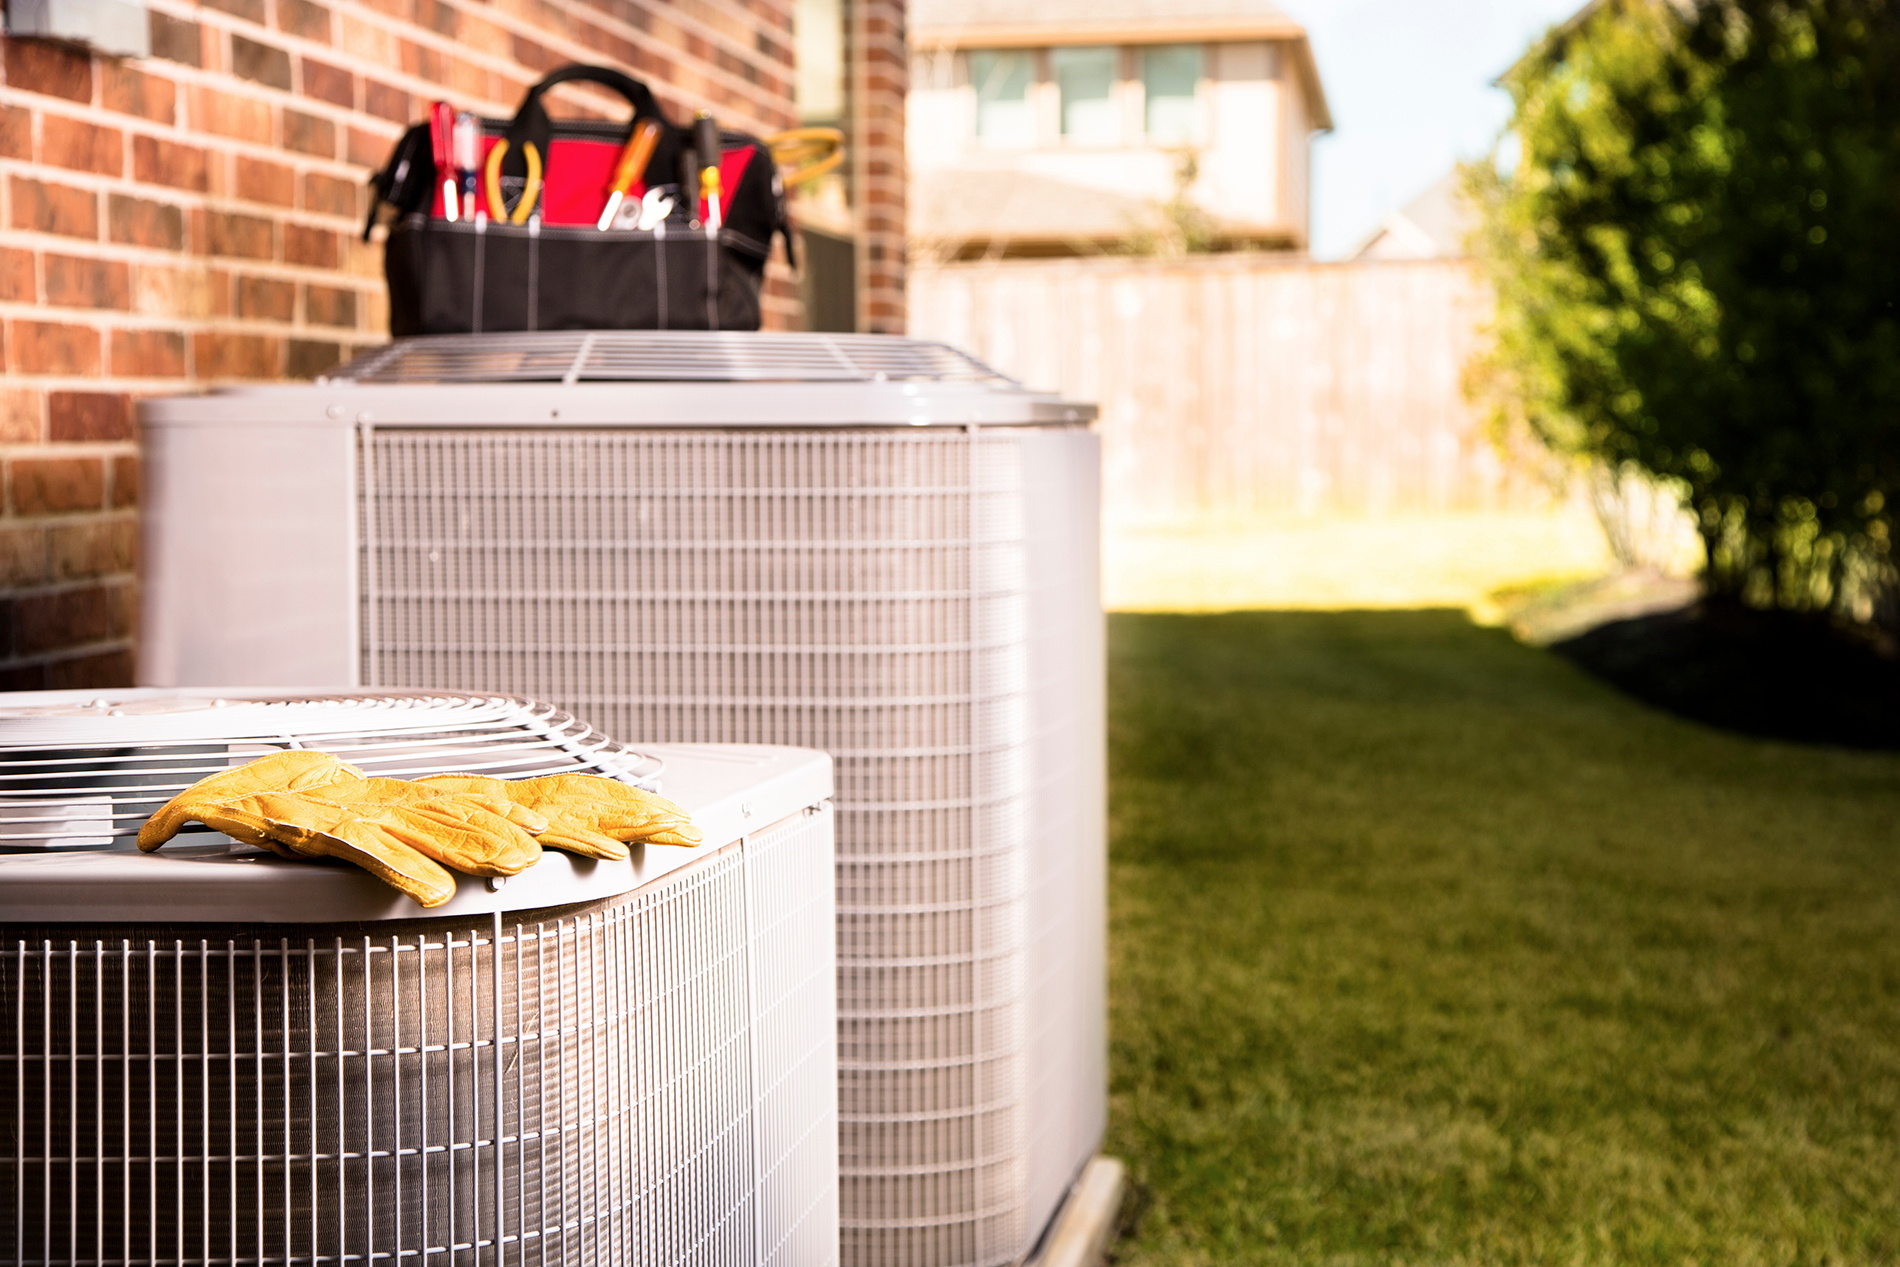 #BB1027 Why Your Air Conditioner Output Might Be Low Climate Masters Highly Rated 10819 Air Conditioning Installation Estimate wallpapers with 1900x1267 px on helpvideos.info - Air Conditioners, Air Coolers and more